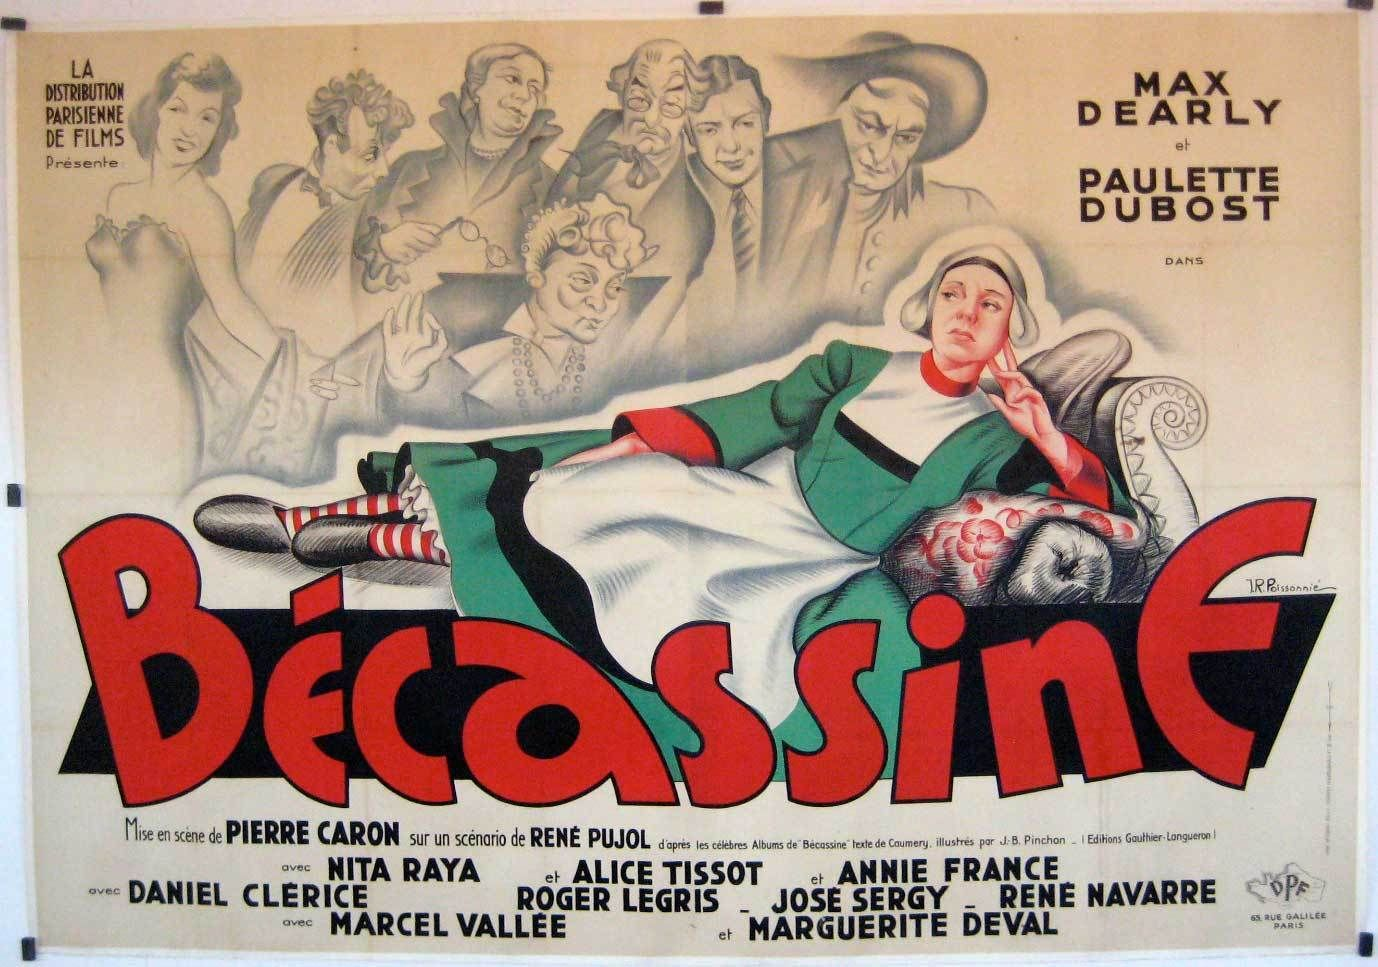 Download Bécassine Full-Movie Free